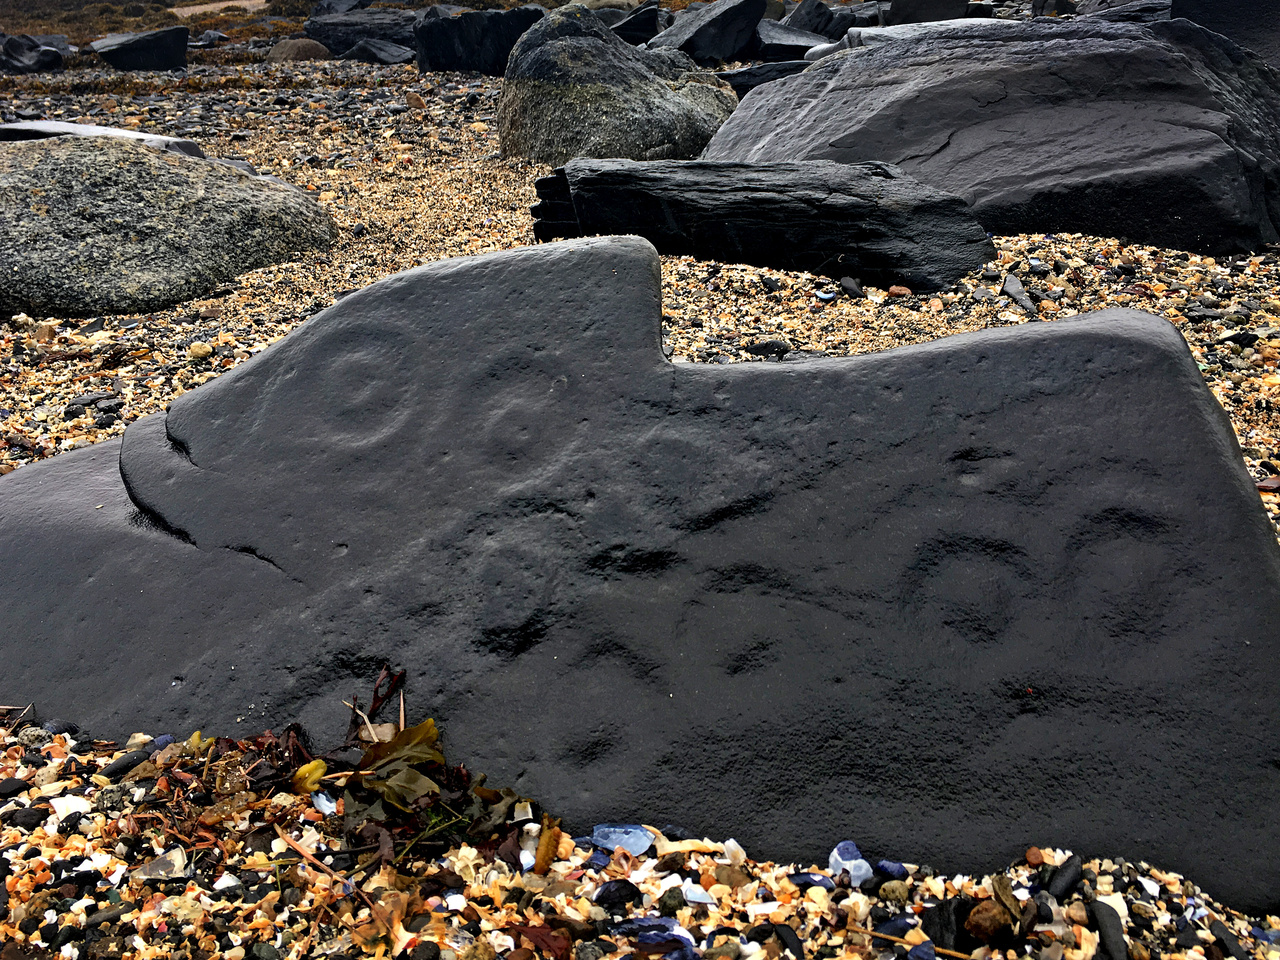 Petroglyphs on Petroglyph beach in Alaska.